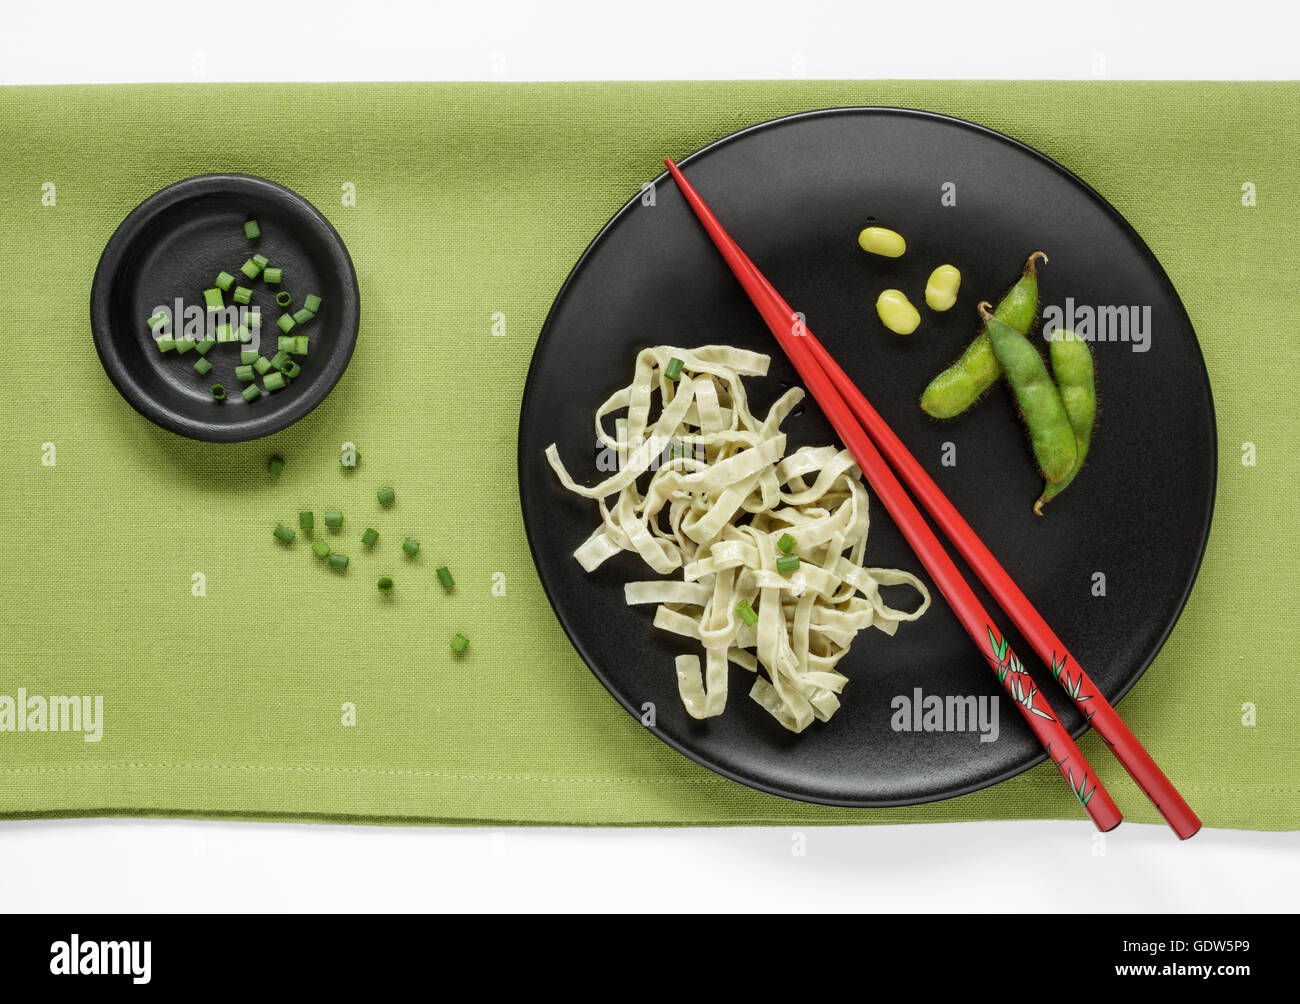 Edamame Bean Fettuccine and fresh Edamame Beans garnished with Chives - Stock Image